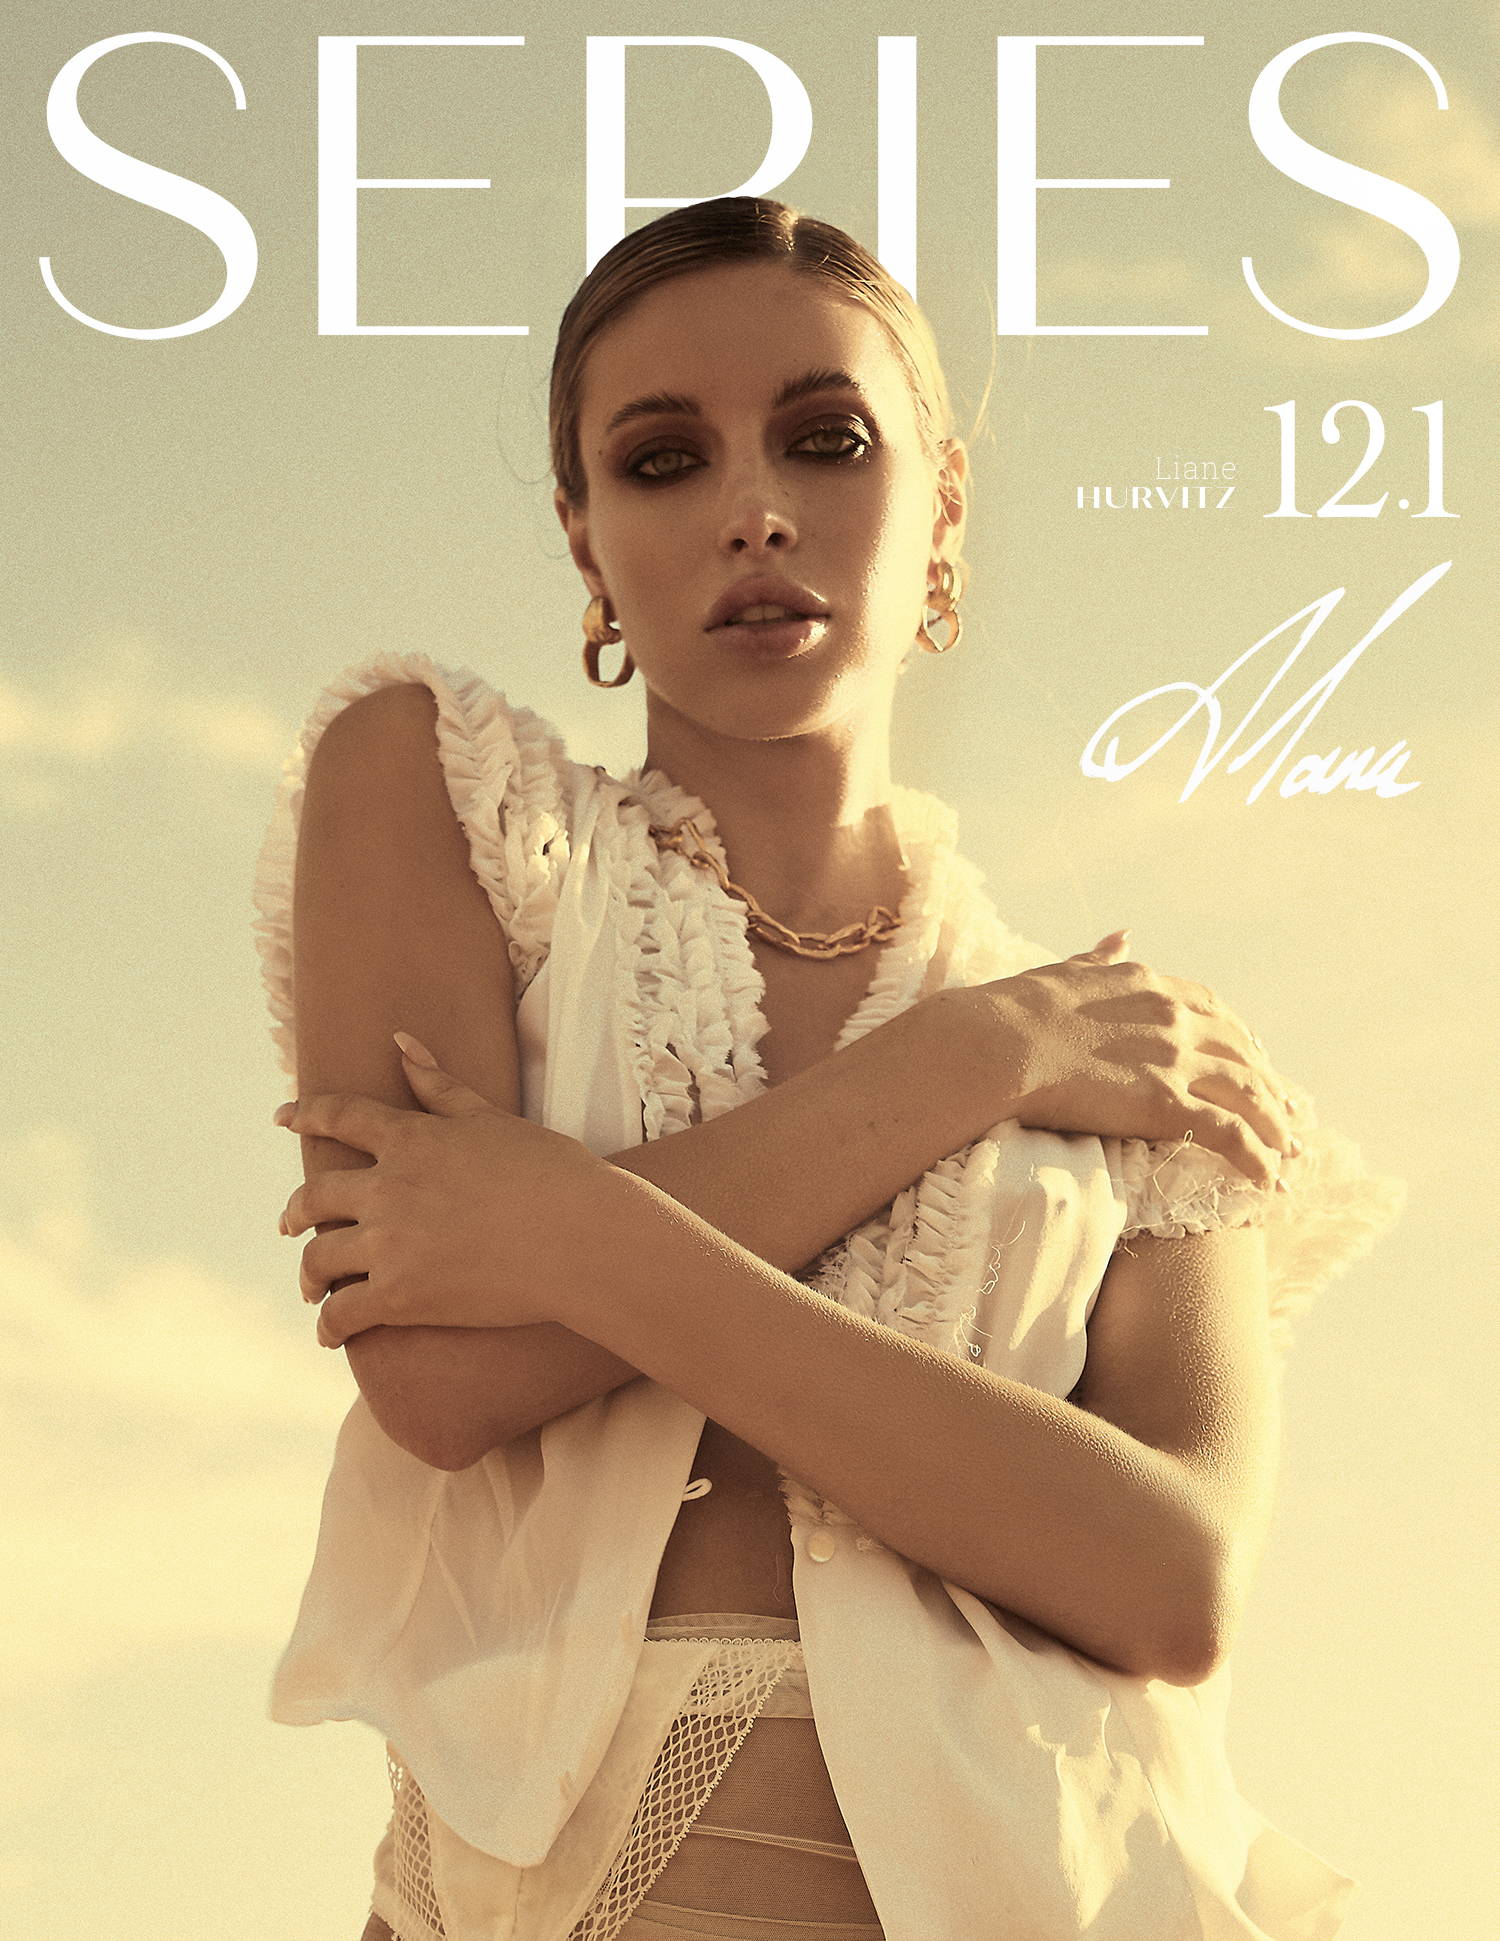 ISSUE 12.1